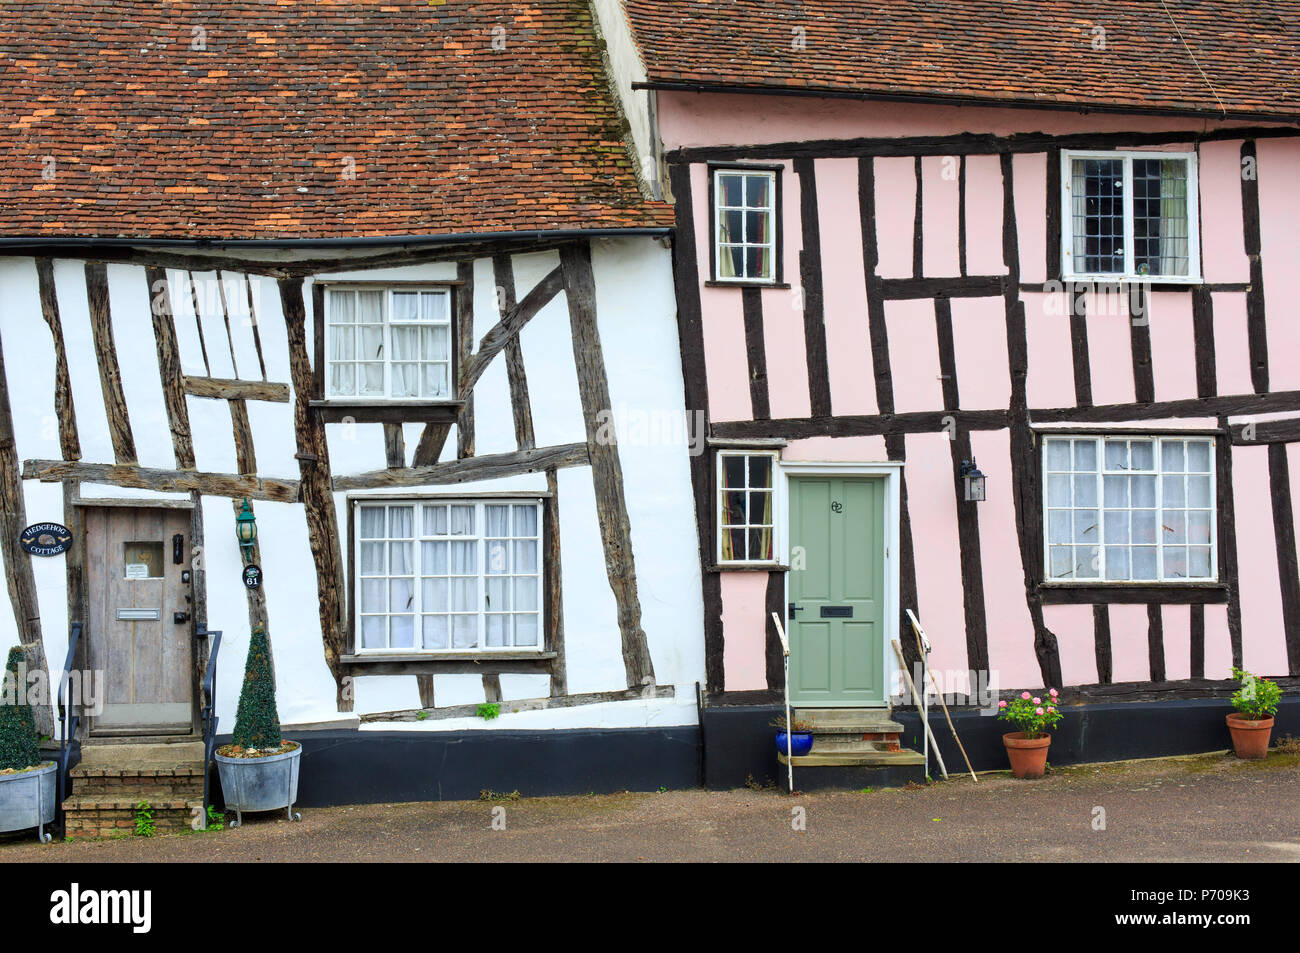 England, Suffolk, Lavenham, Old timber framed cottages in the village. - Stock Image